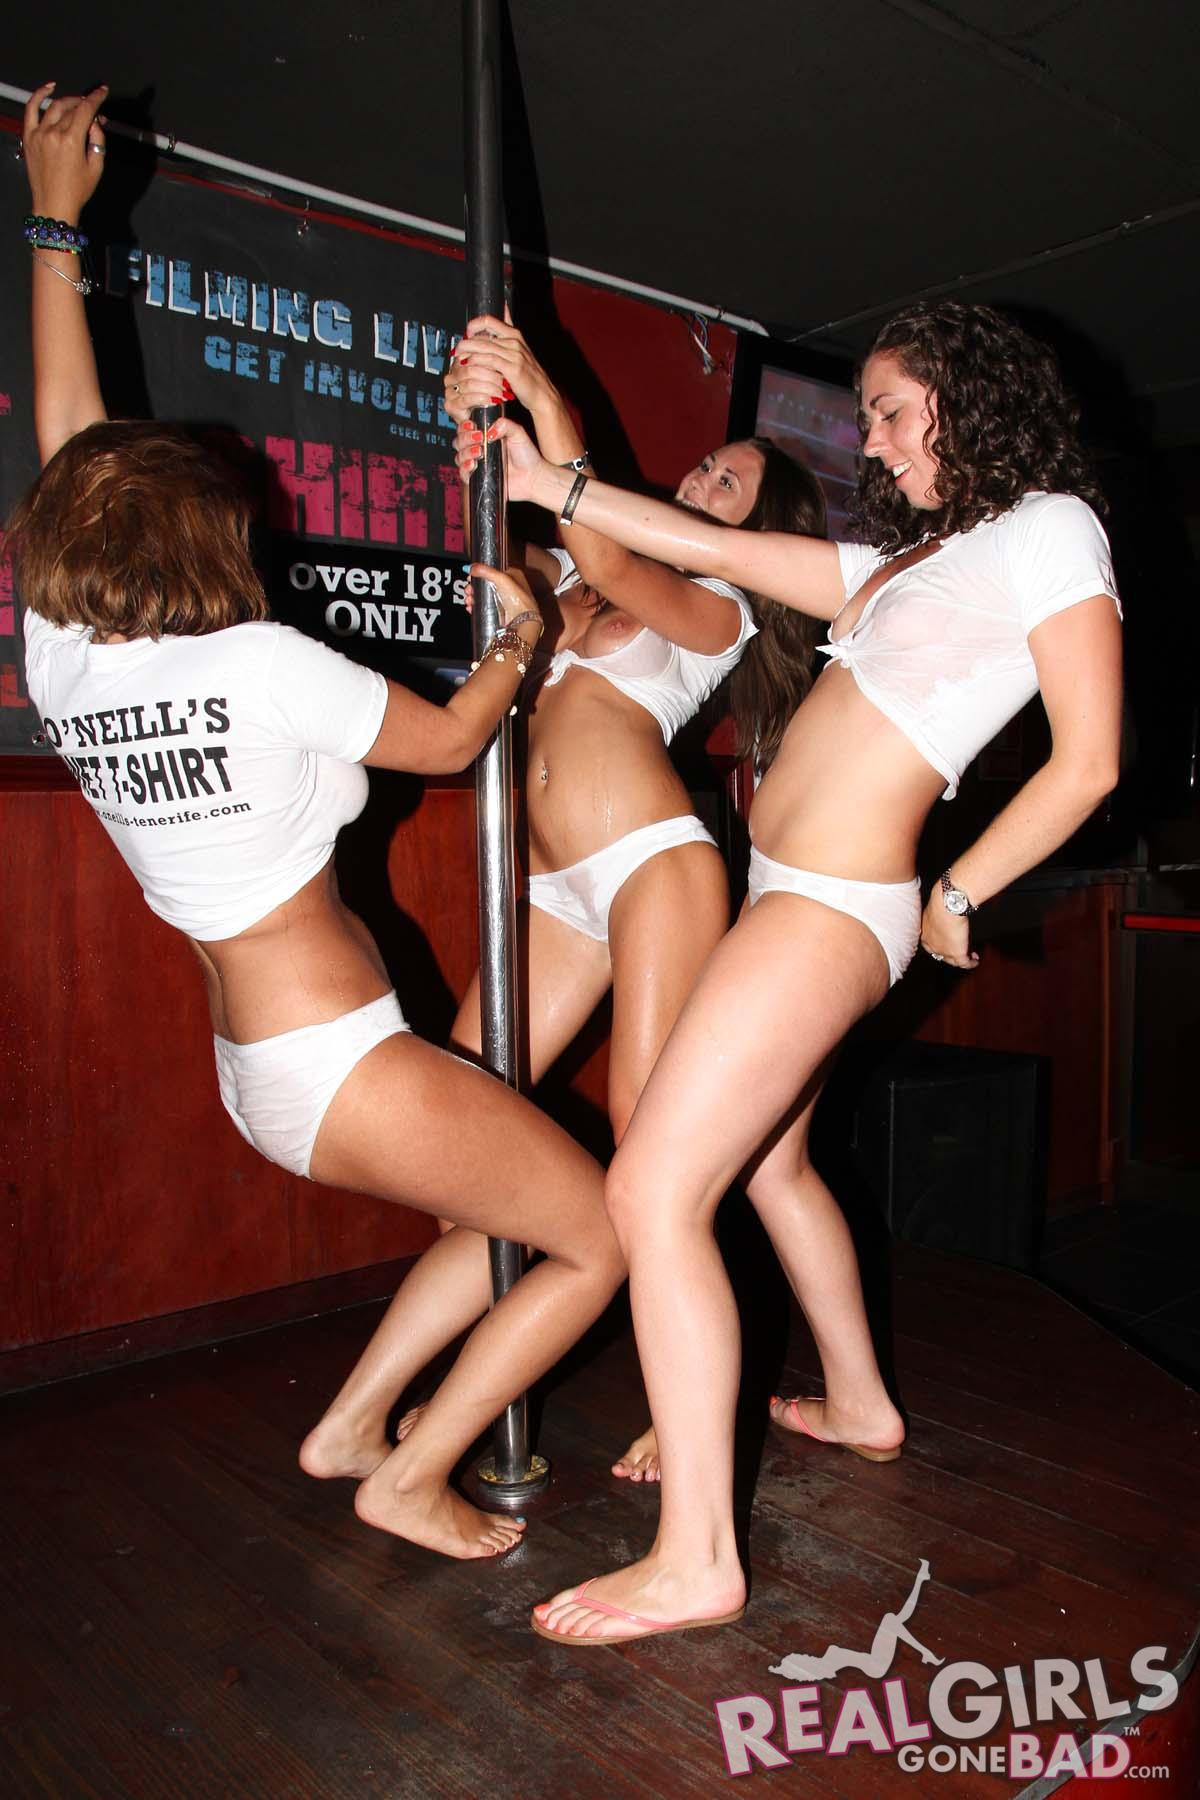 Real Girls Gone Bad - Wet T-Shirt Contest 57-7113